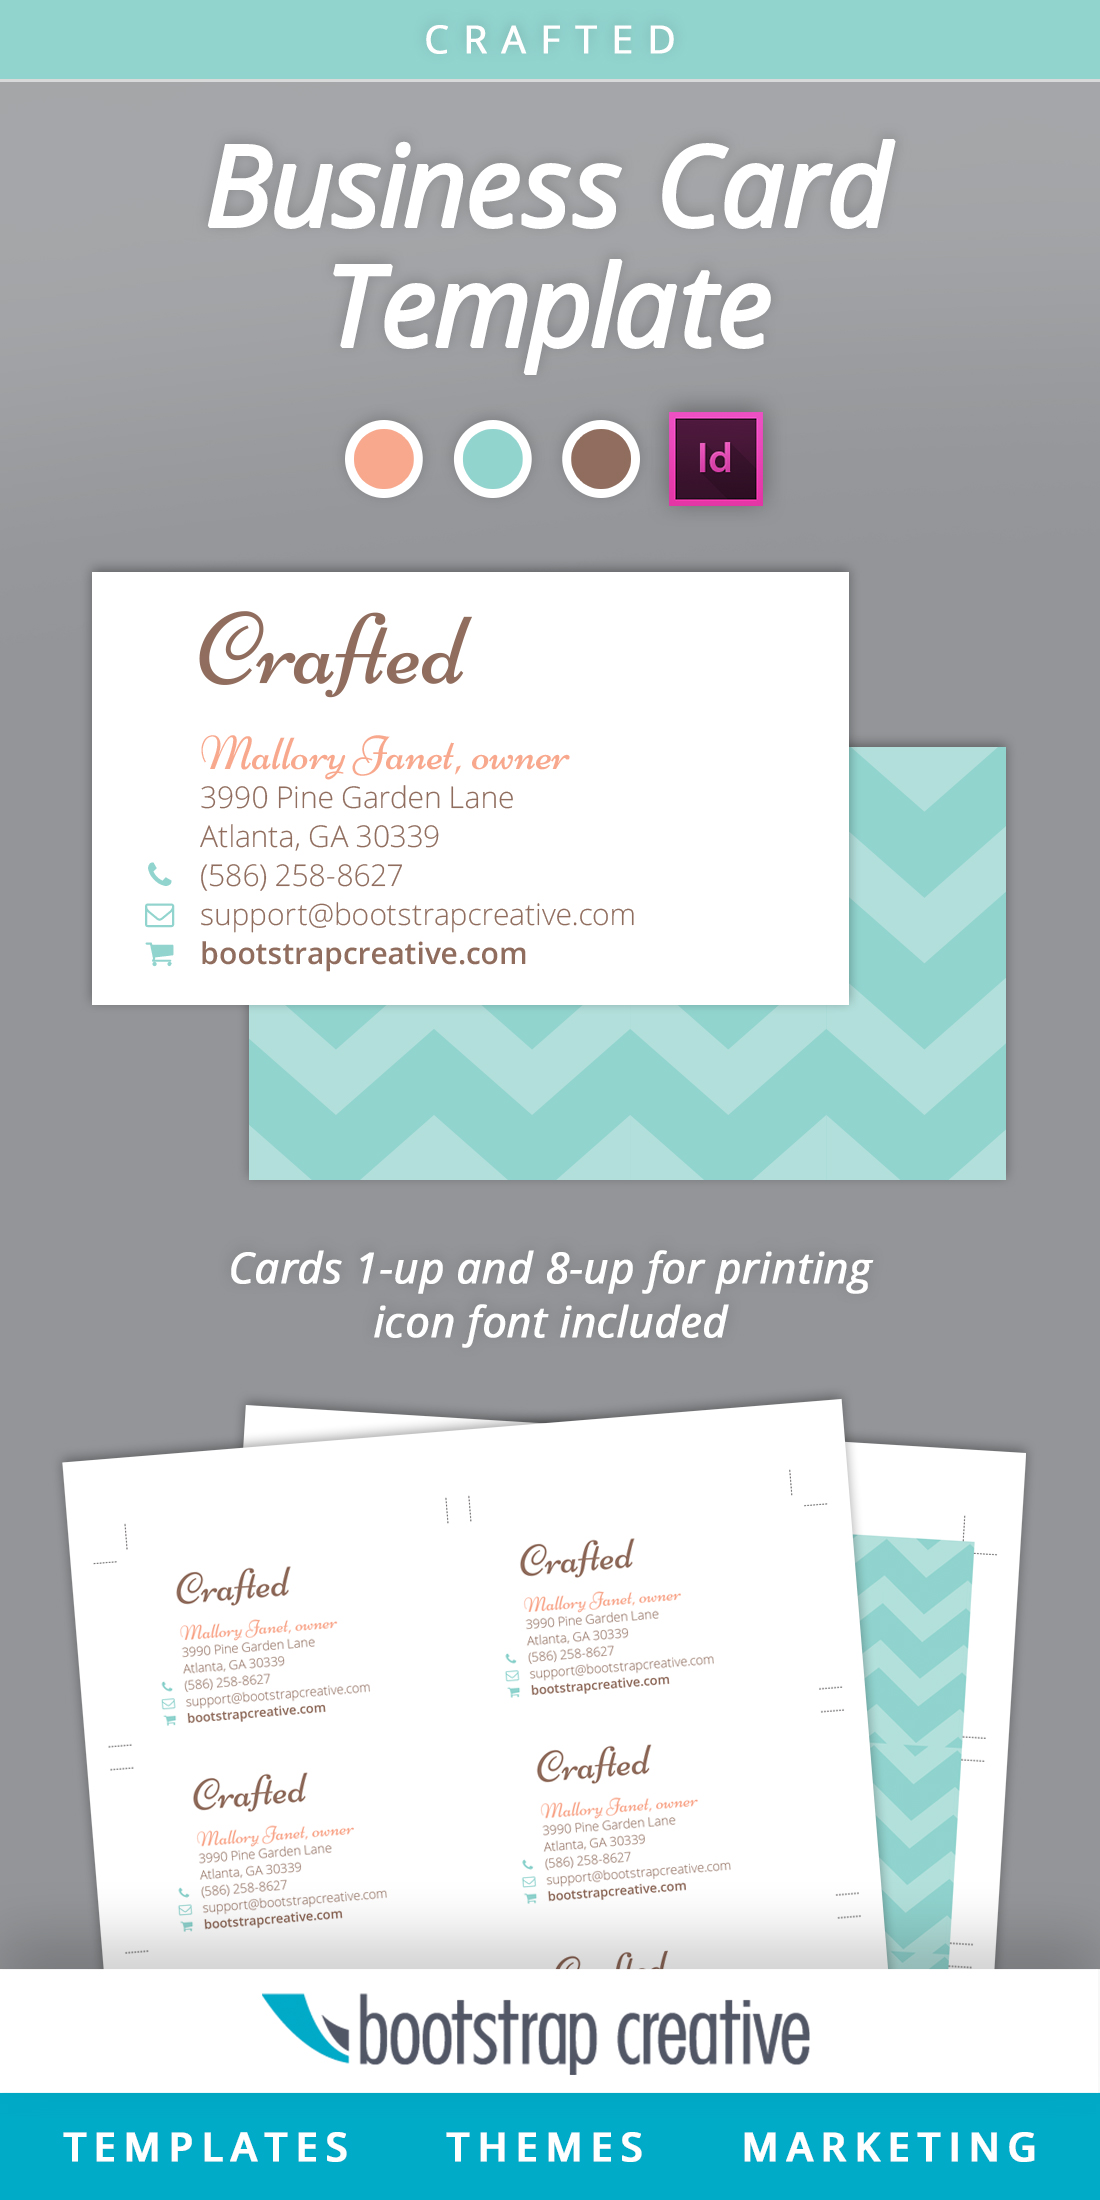 Business card indesign template business card sample business card indesign template flashek Gallery